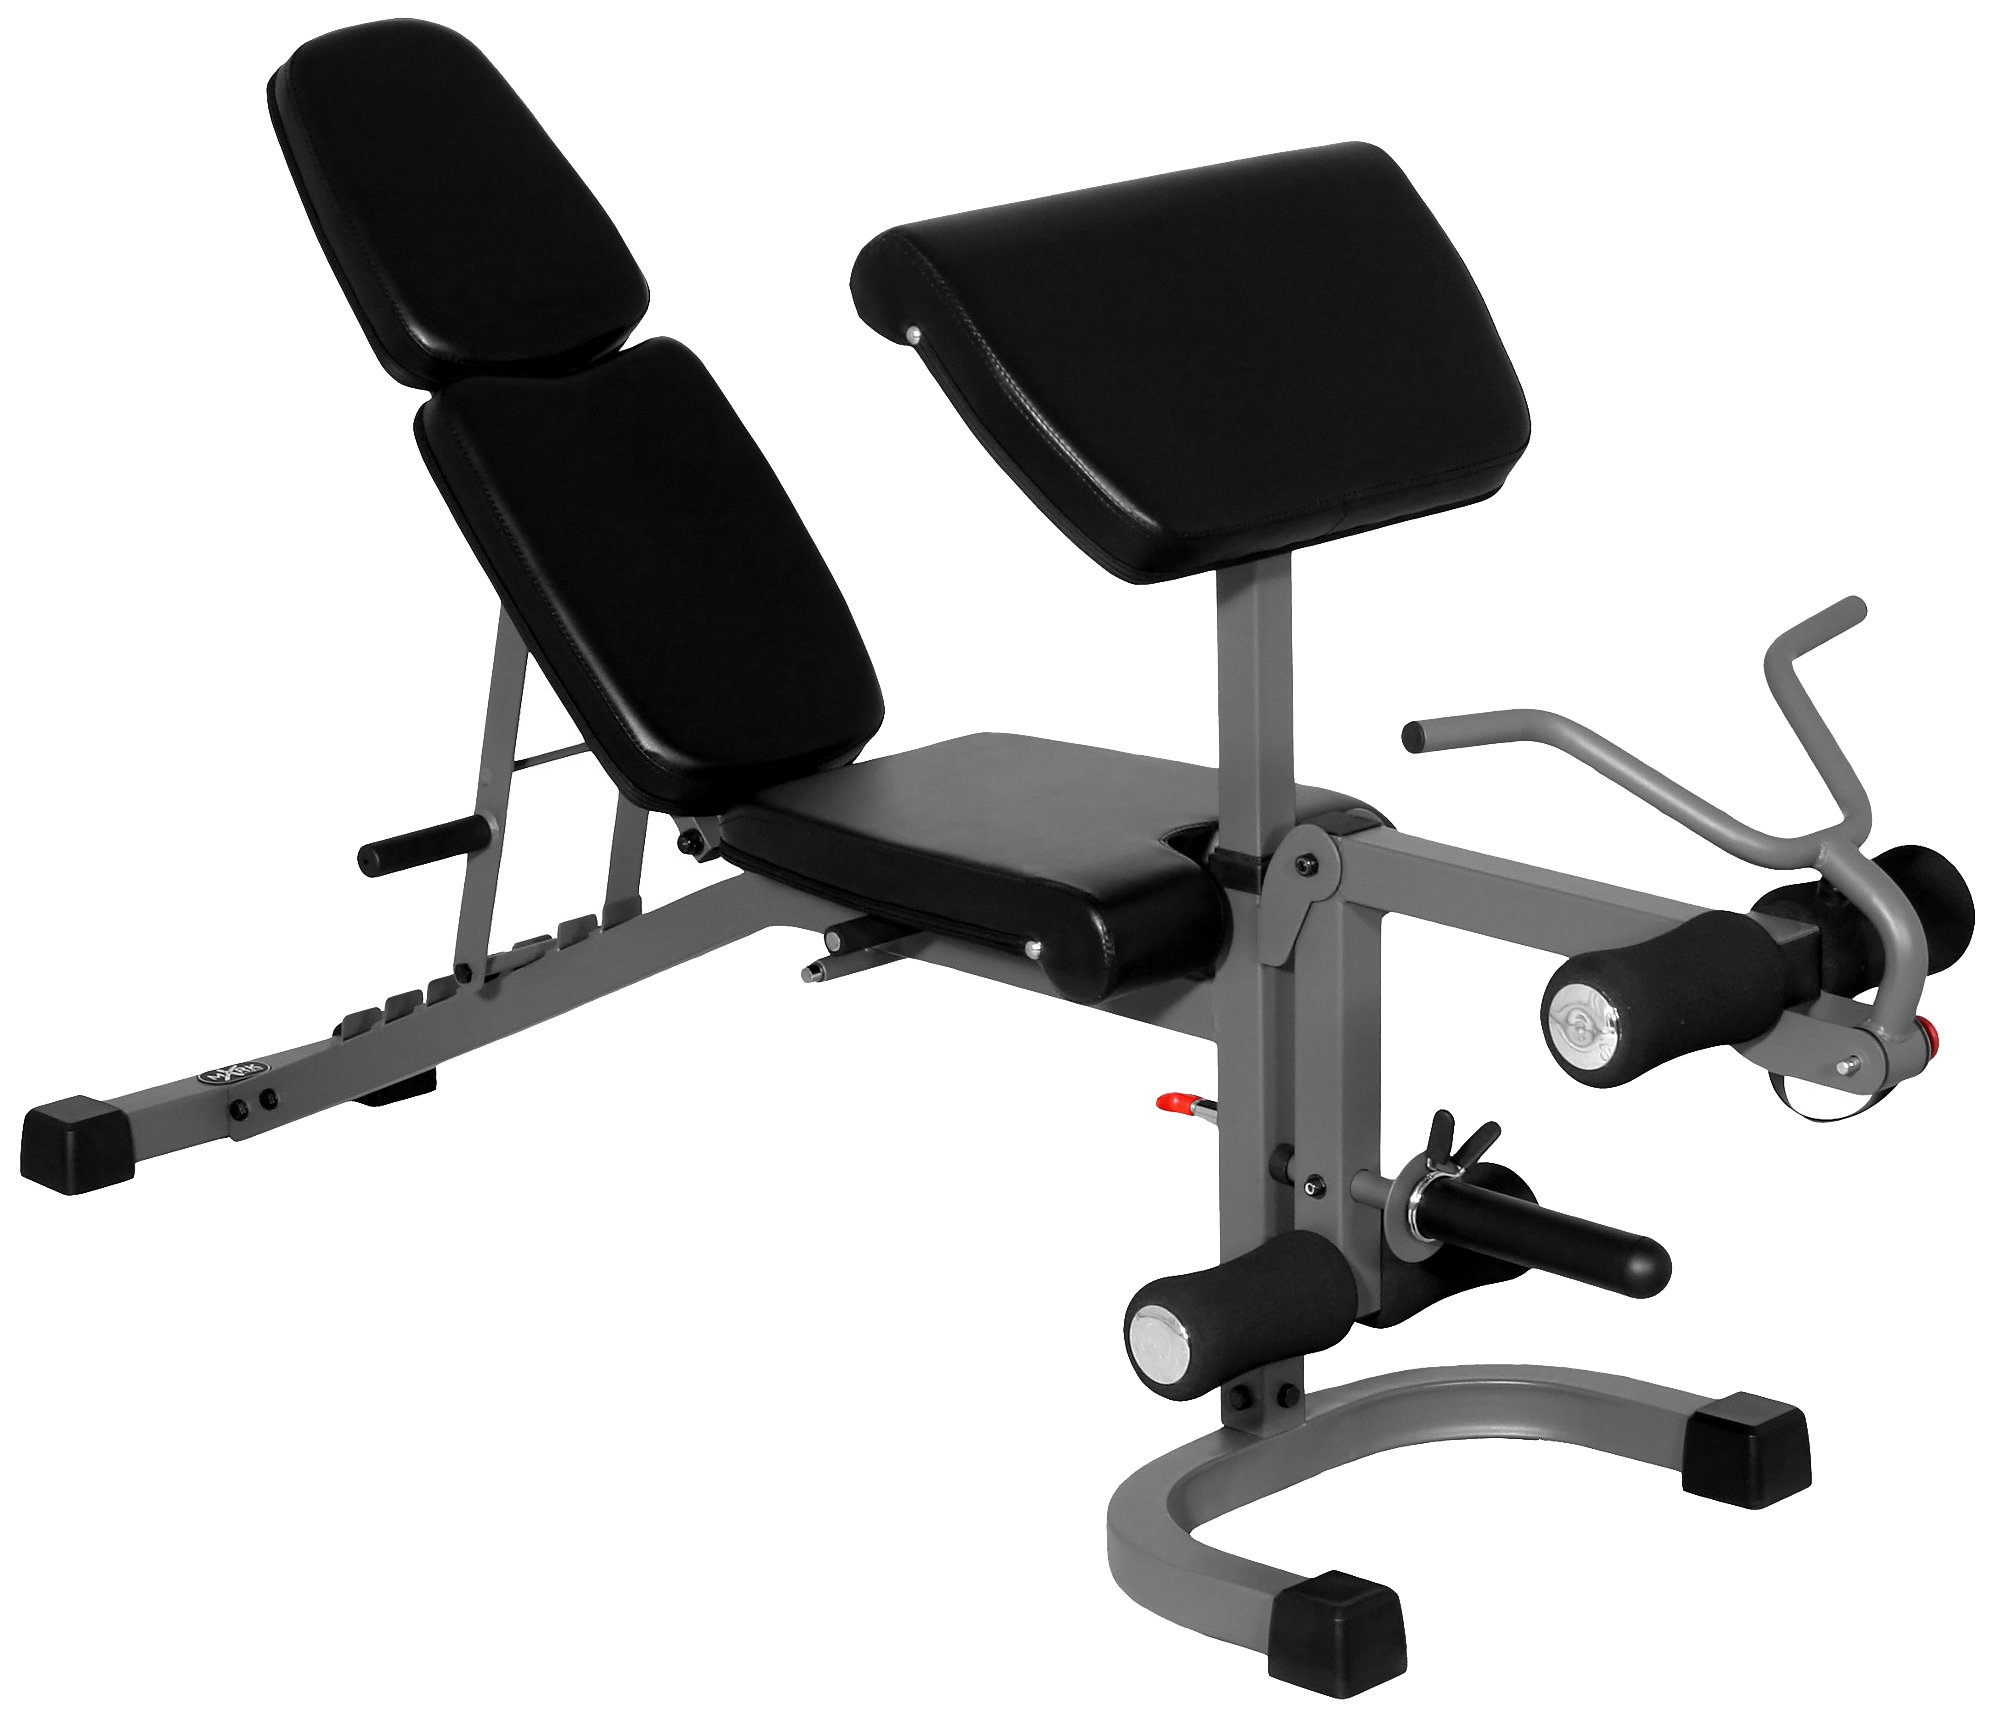 XMark FID Flat Incline Decline Weight Bench with Arm Curl and Leg Developer XM-4418 by XMark Fitness